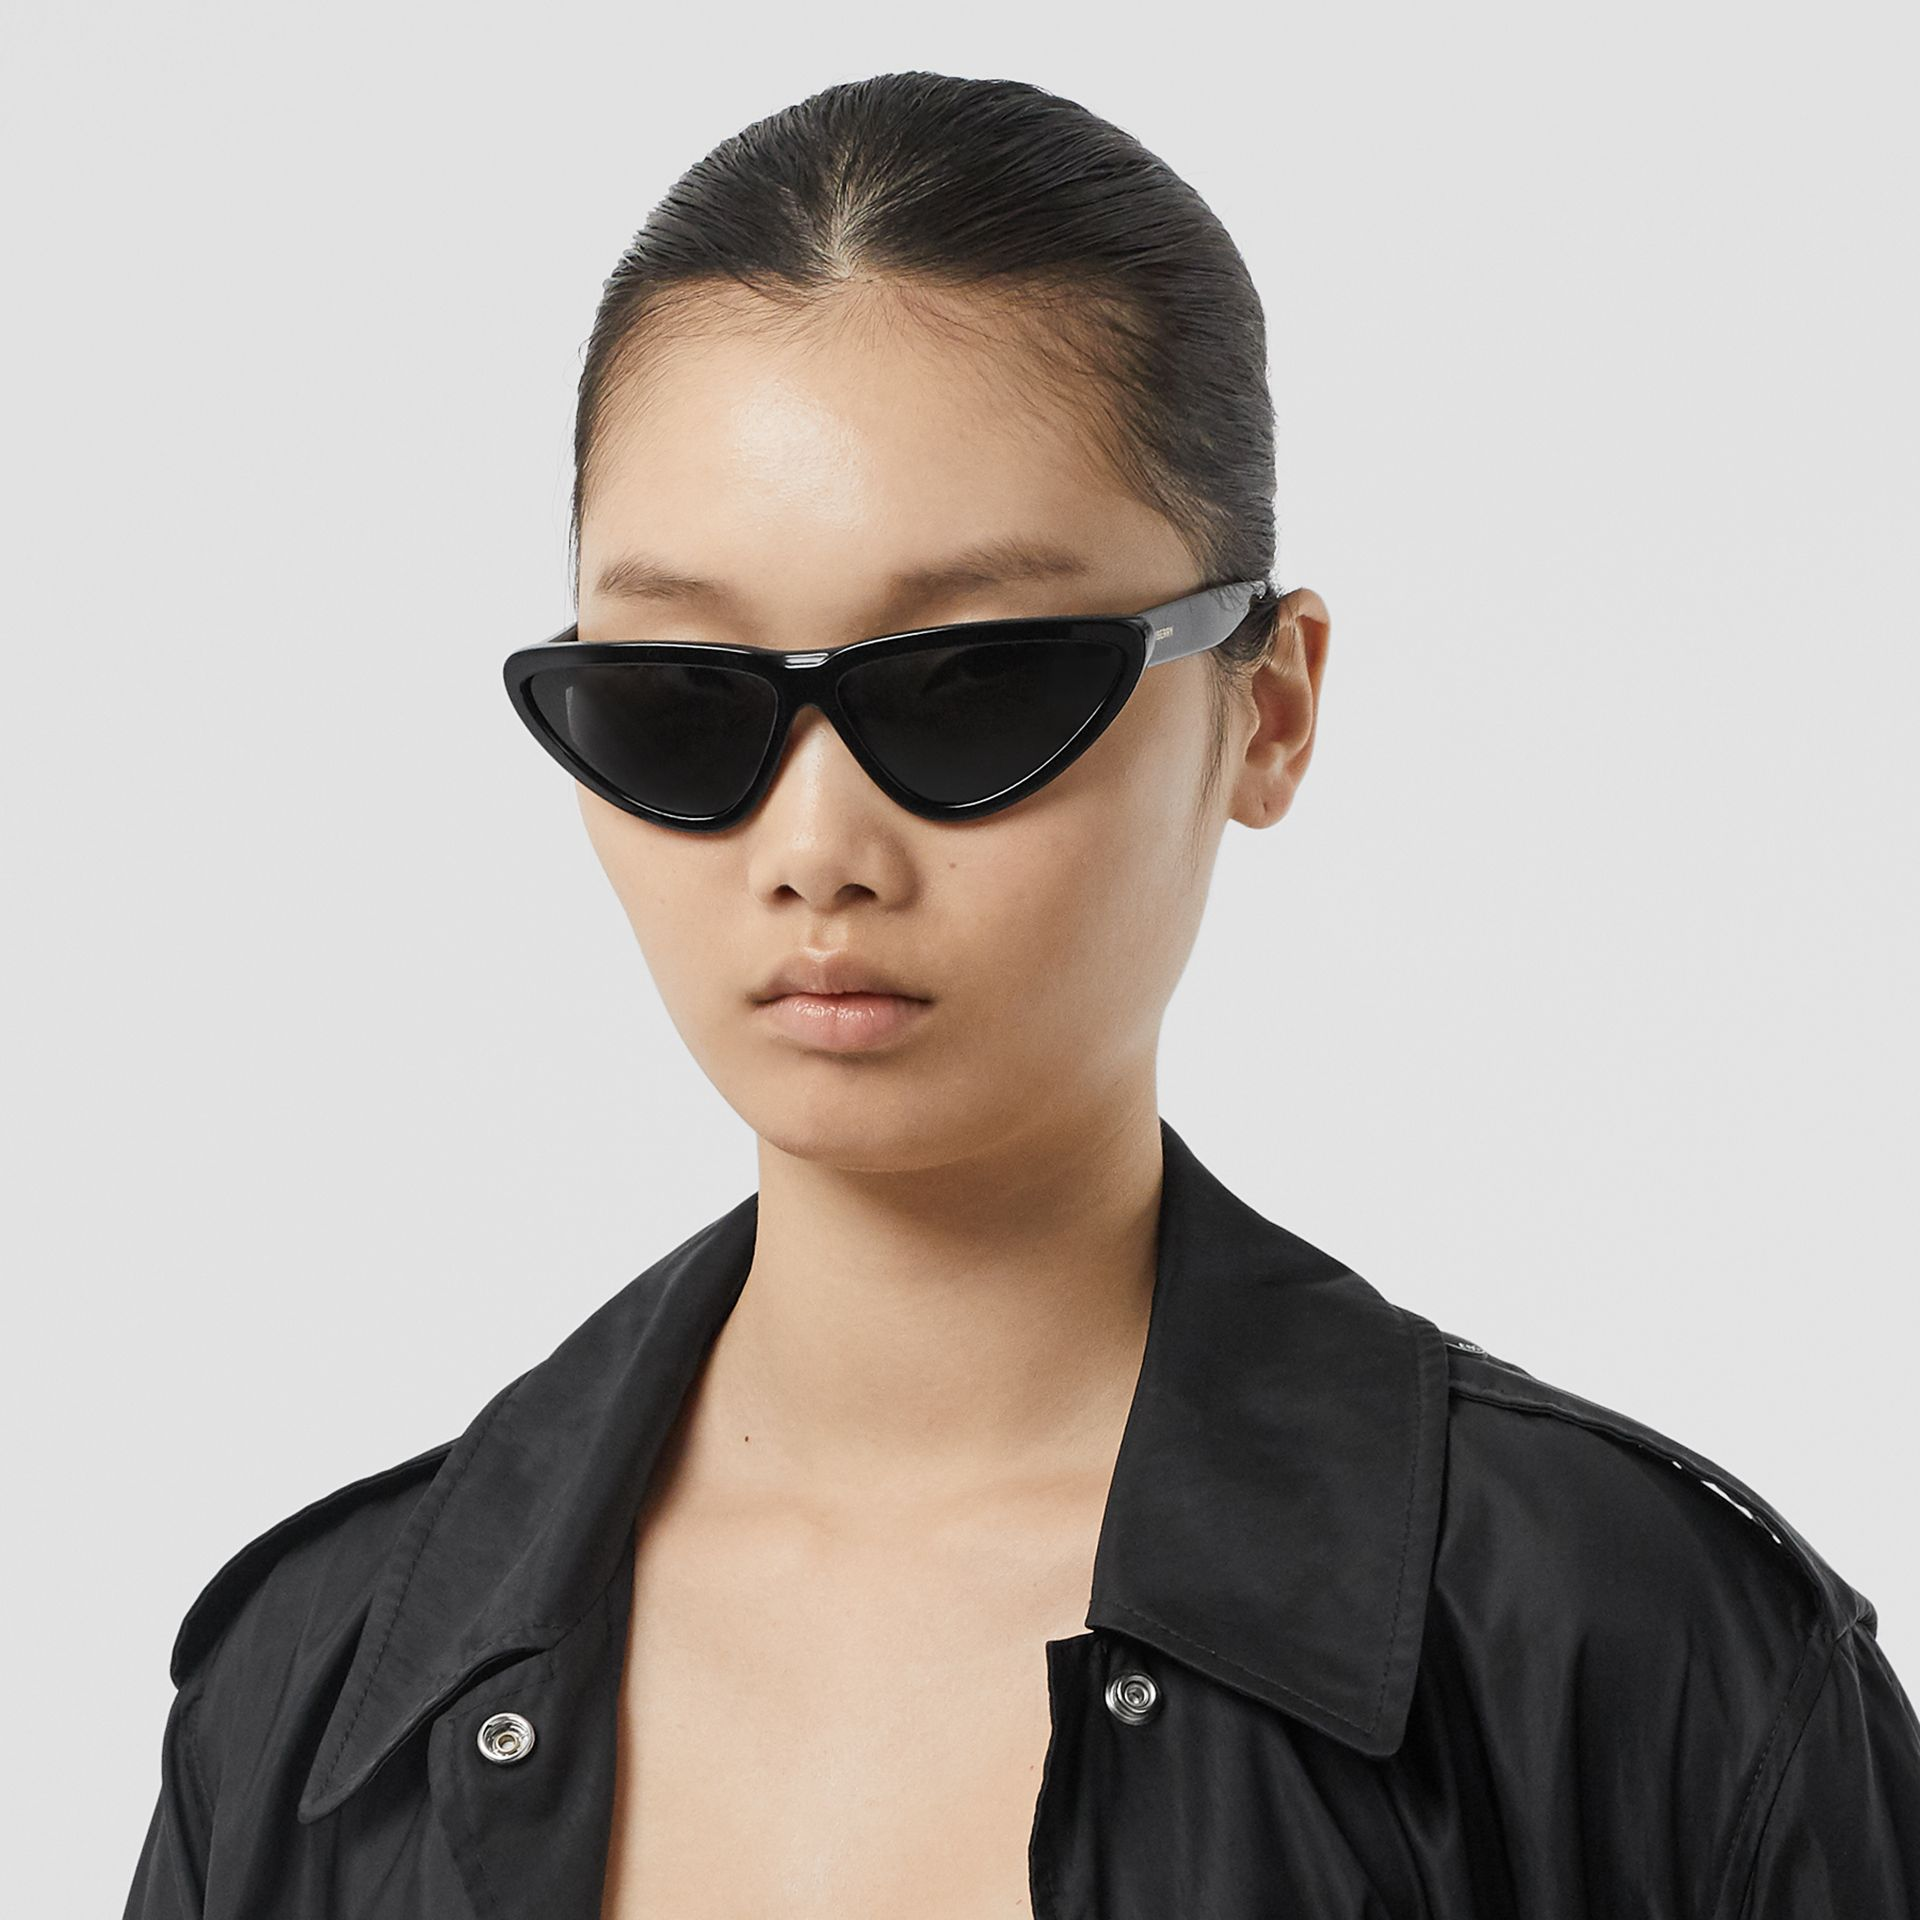 Triangular Frame Sunglasses in Black - Women | Burberry - gallery image 2